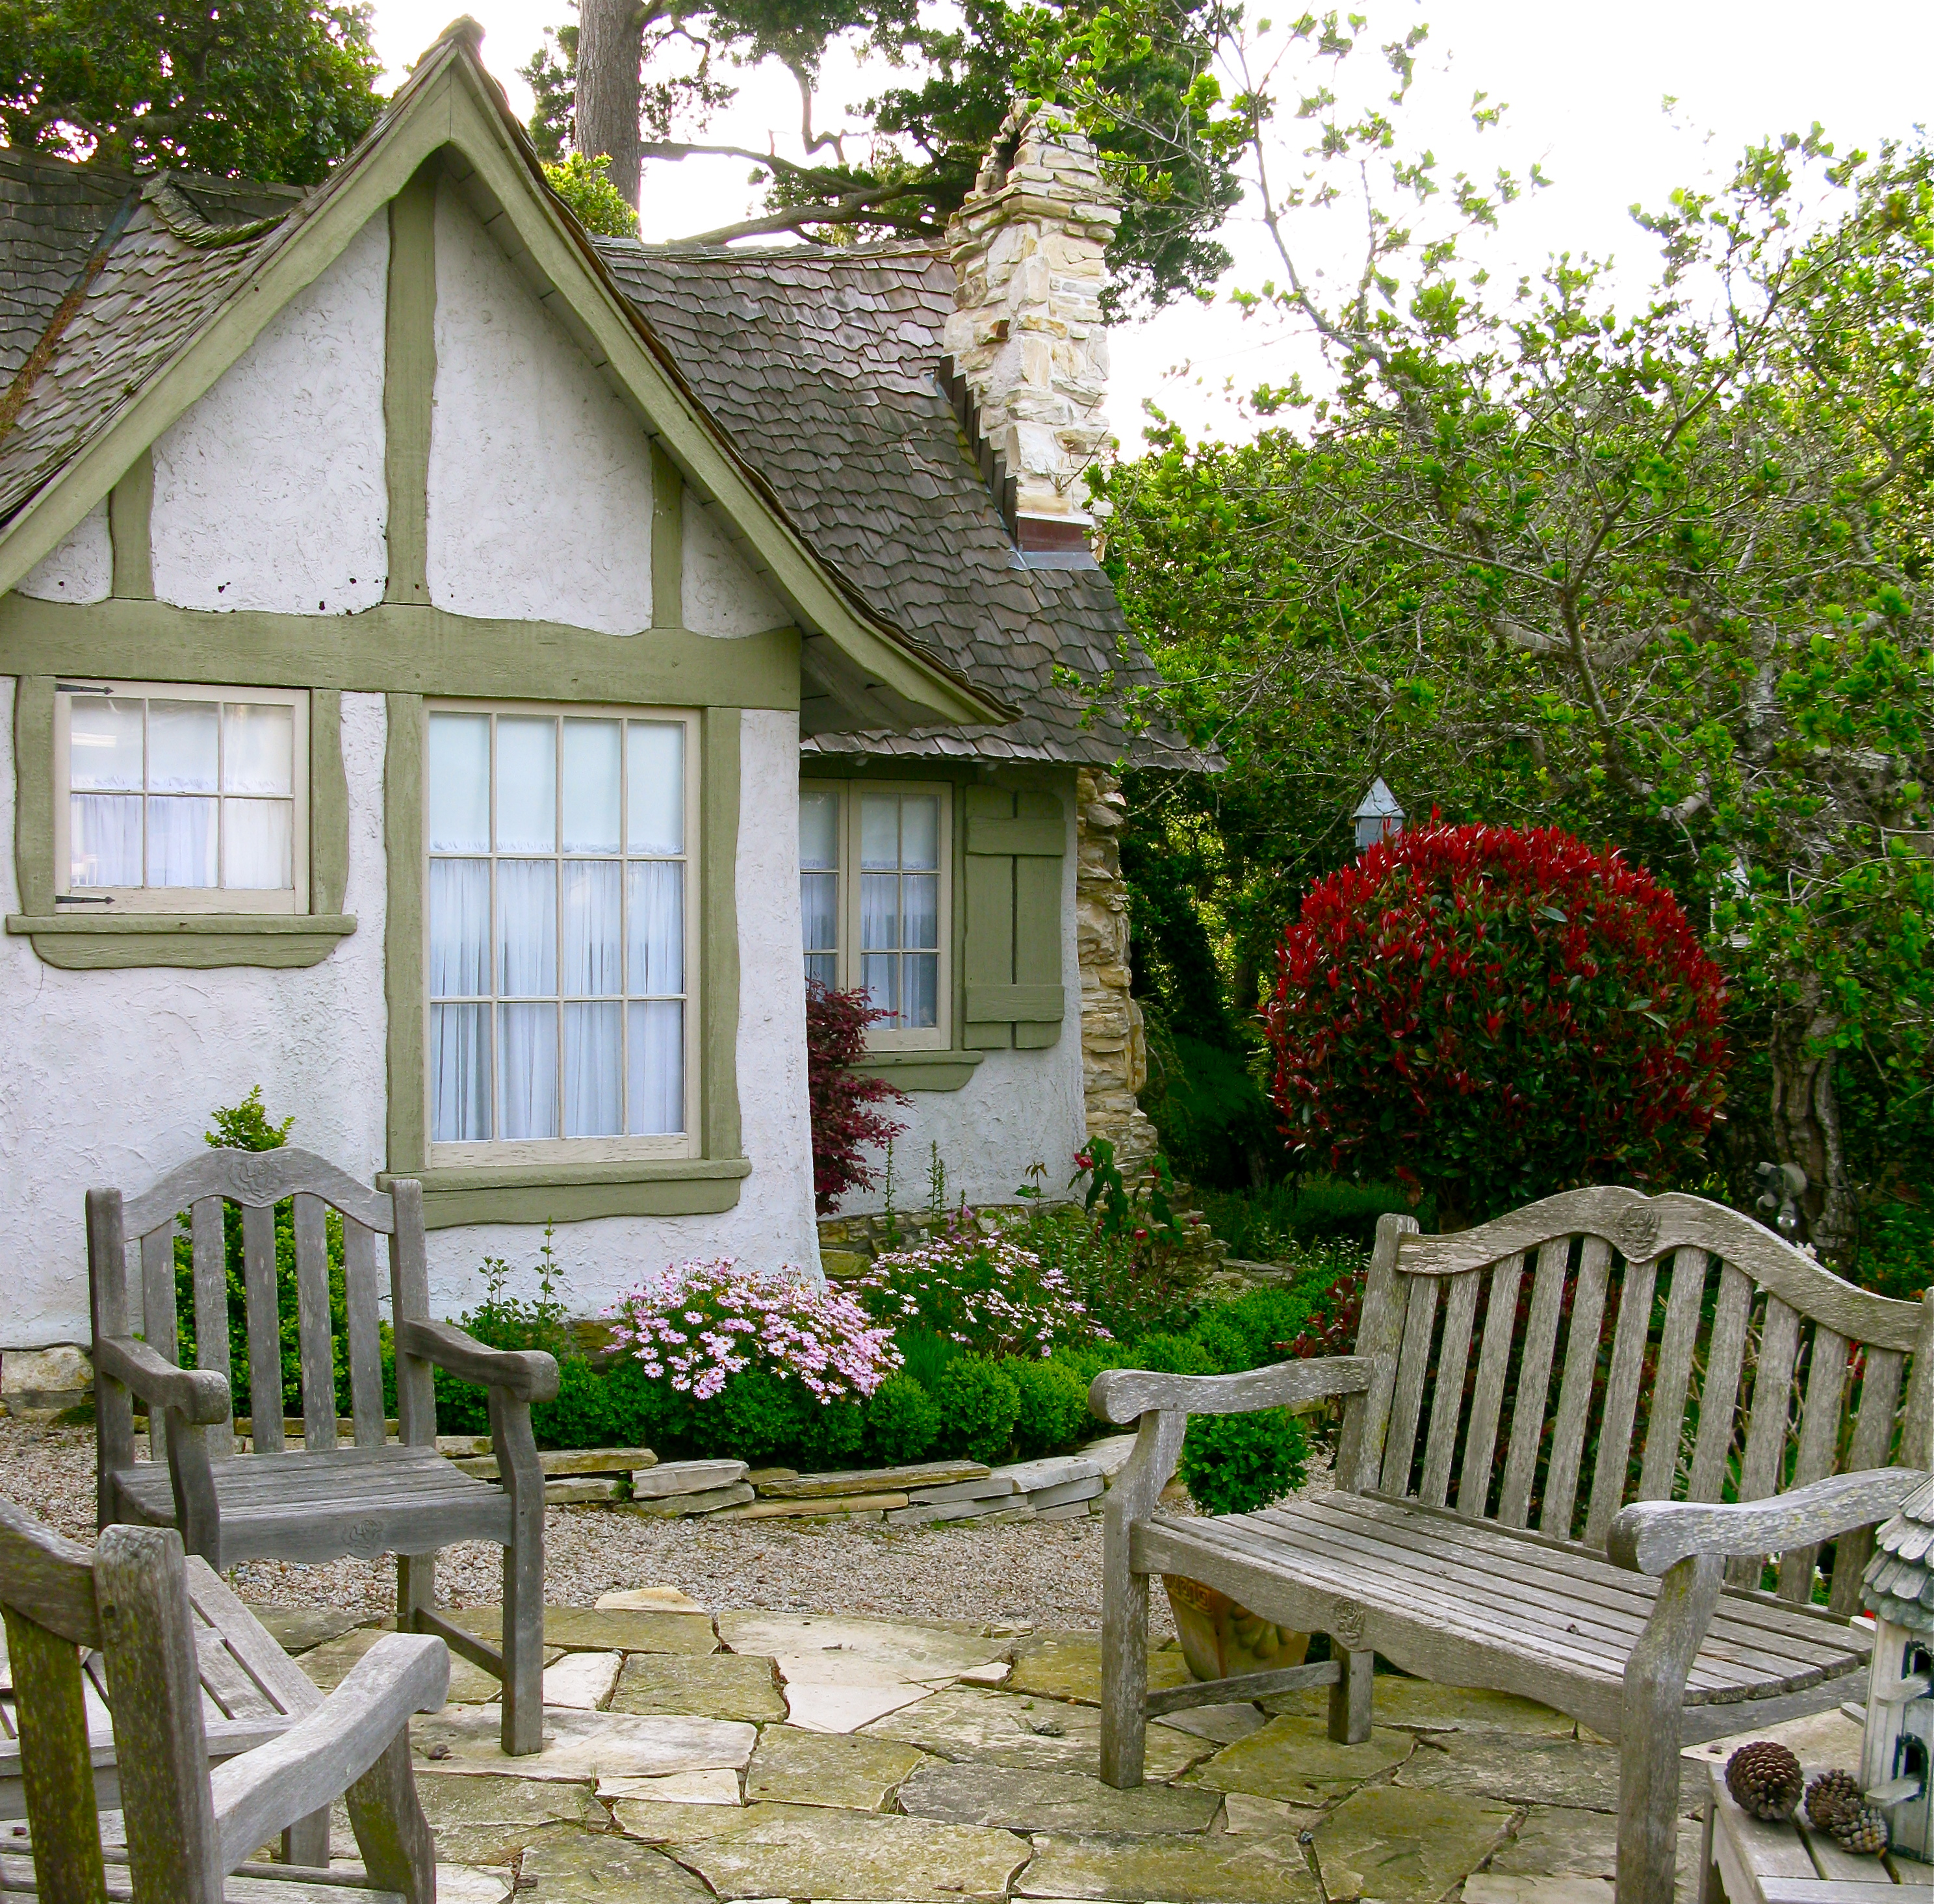 Dark House Hasweared Hansel But Hugh Fairy Tale Cottages In Now I Am Delighted By Obvious Care New Owner Is Puttinginto Carmel Stone Patio To West Side curbed Hansel And Gretel House